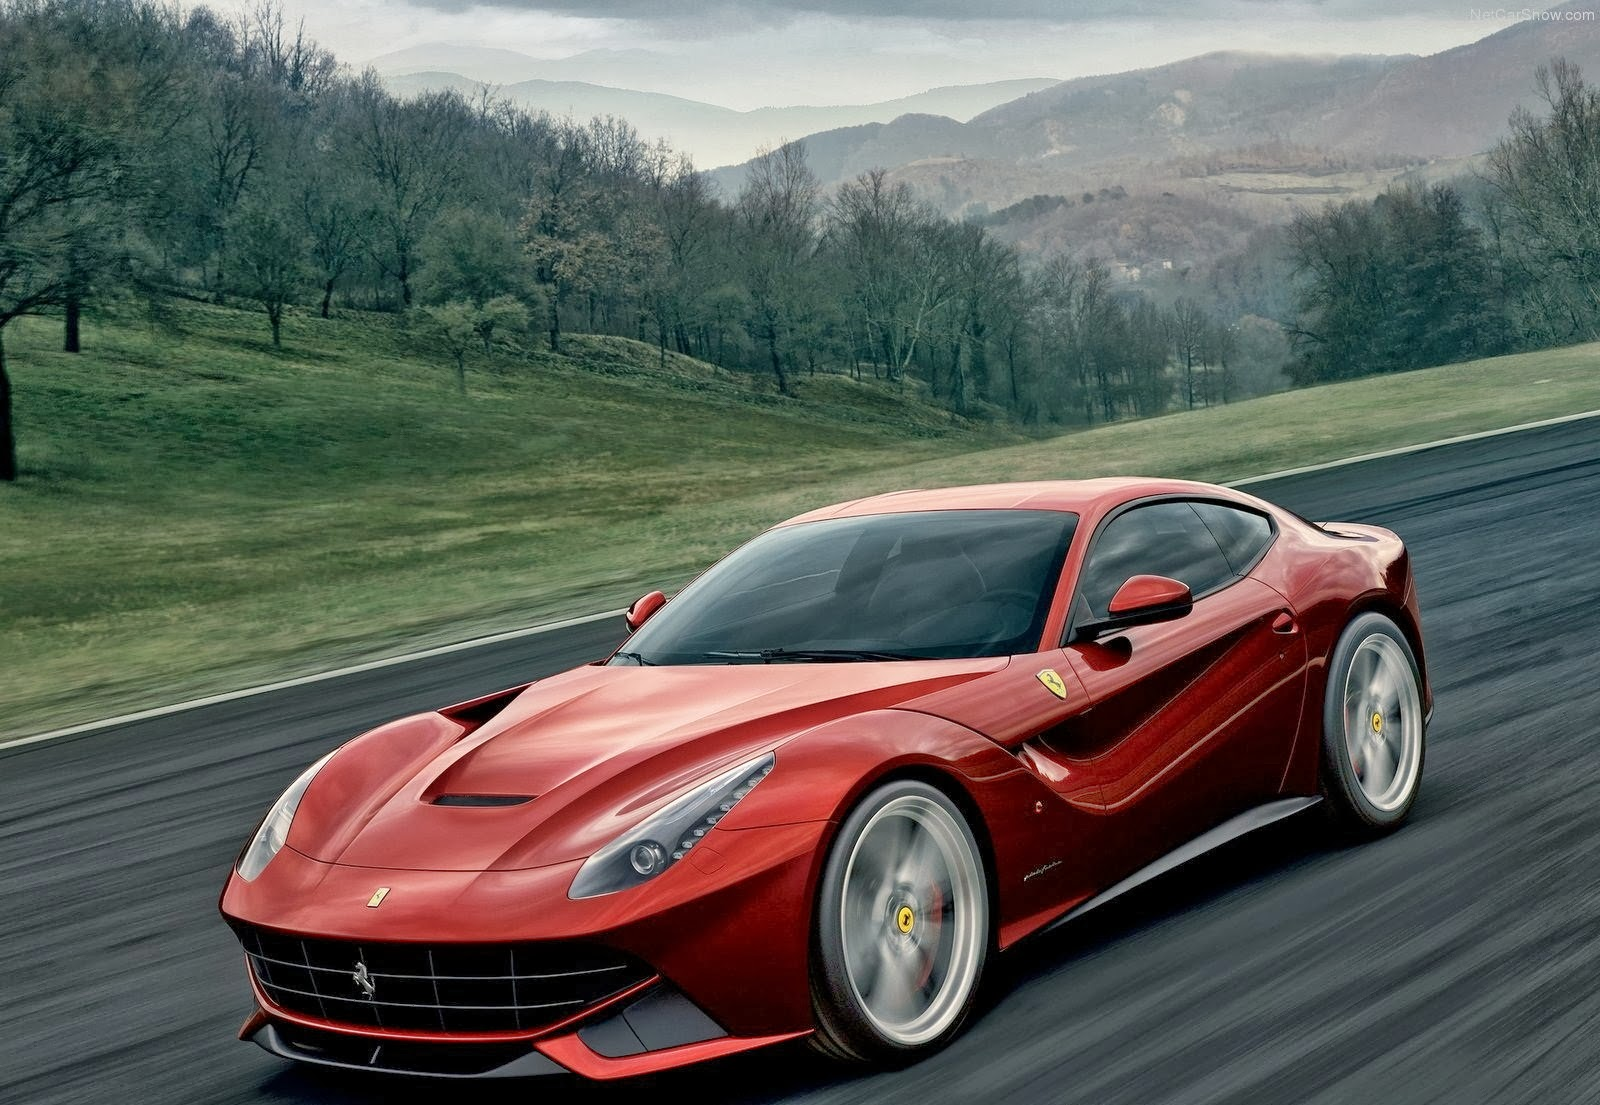 2014 Ferrari F12 Berlinetta Wallpaper, Prices  Specification, Prices, Photos Review